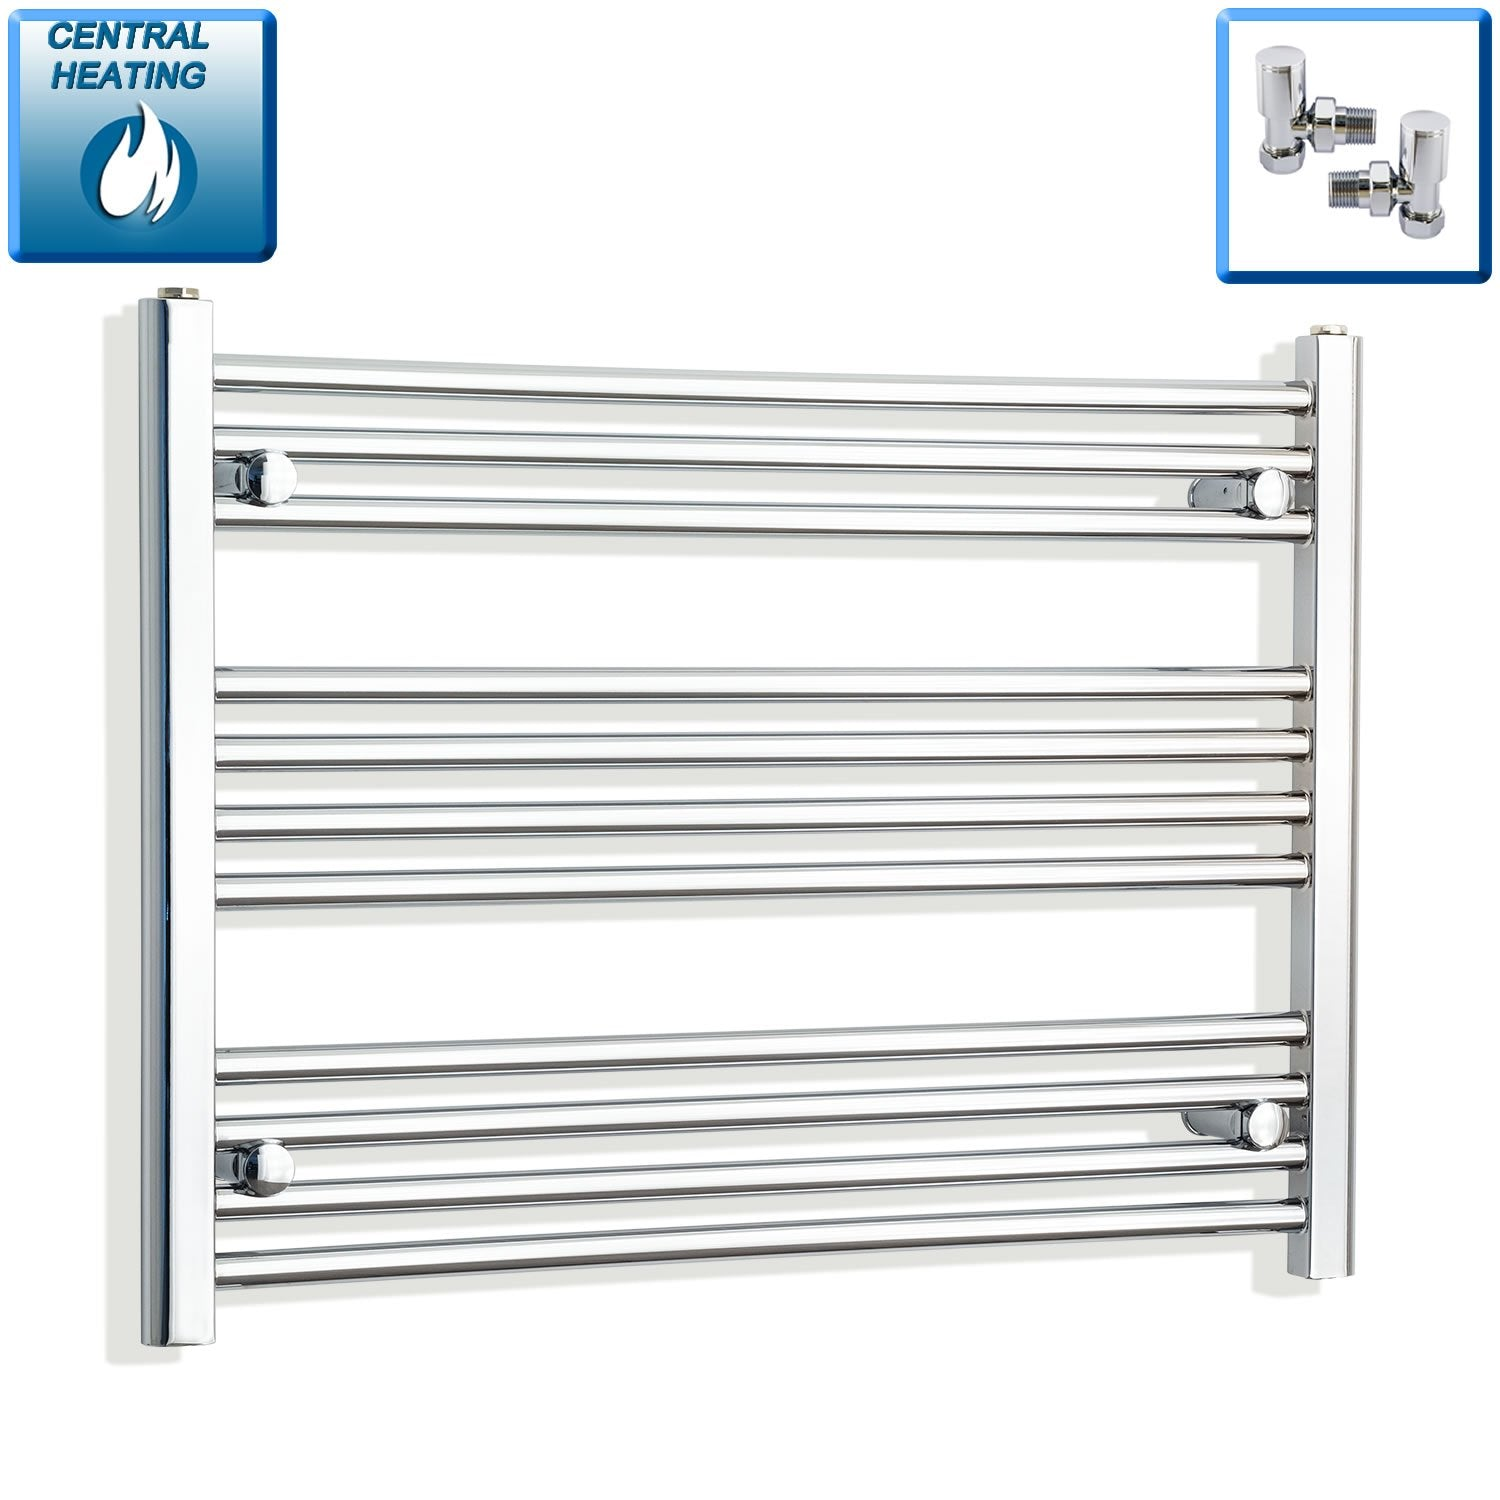 750mm Wide 600mm High Flat Chrome Heated Towel Rail Radiator HTR,With Angled Valve